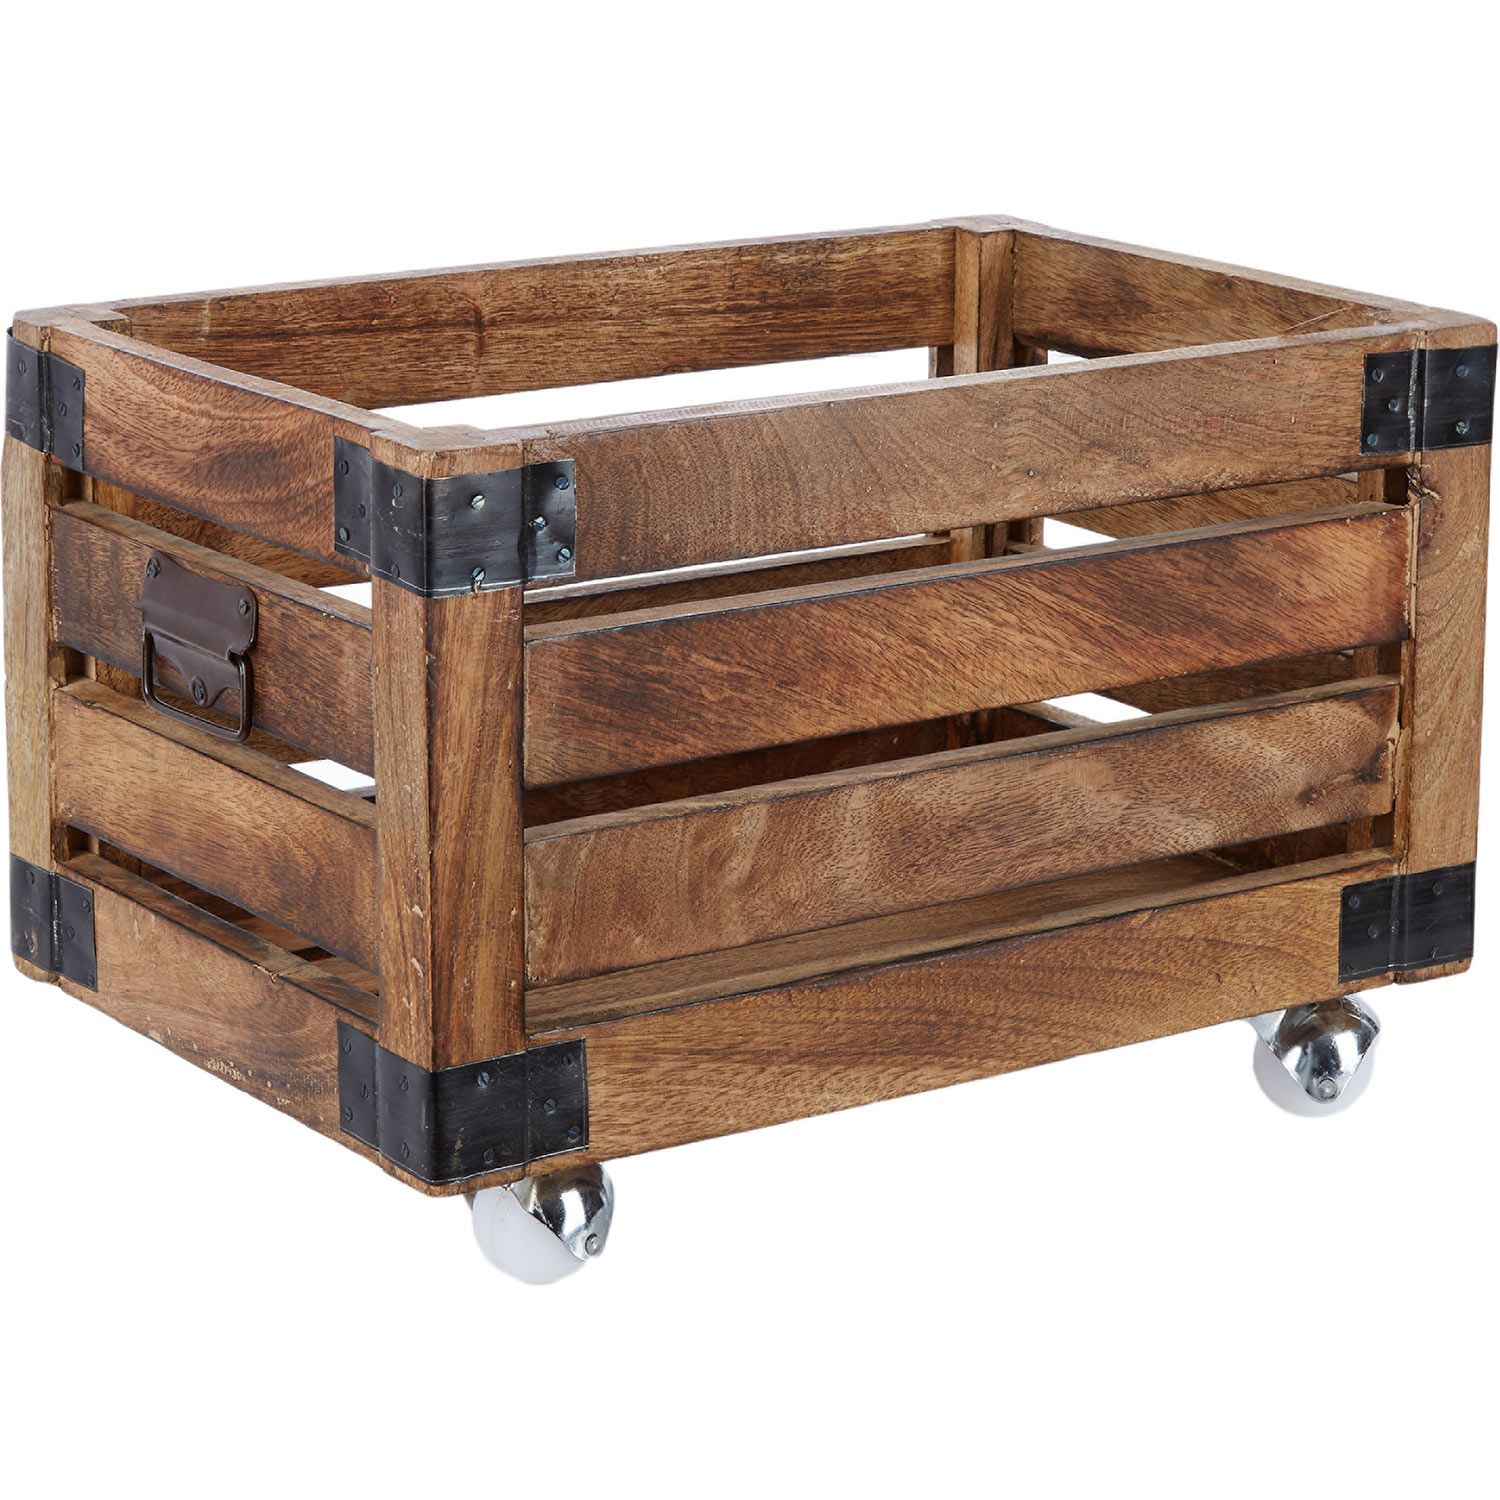 Large Wooden Storage Crate Tk Maxx Set Props Ideas Our